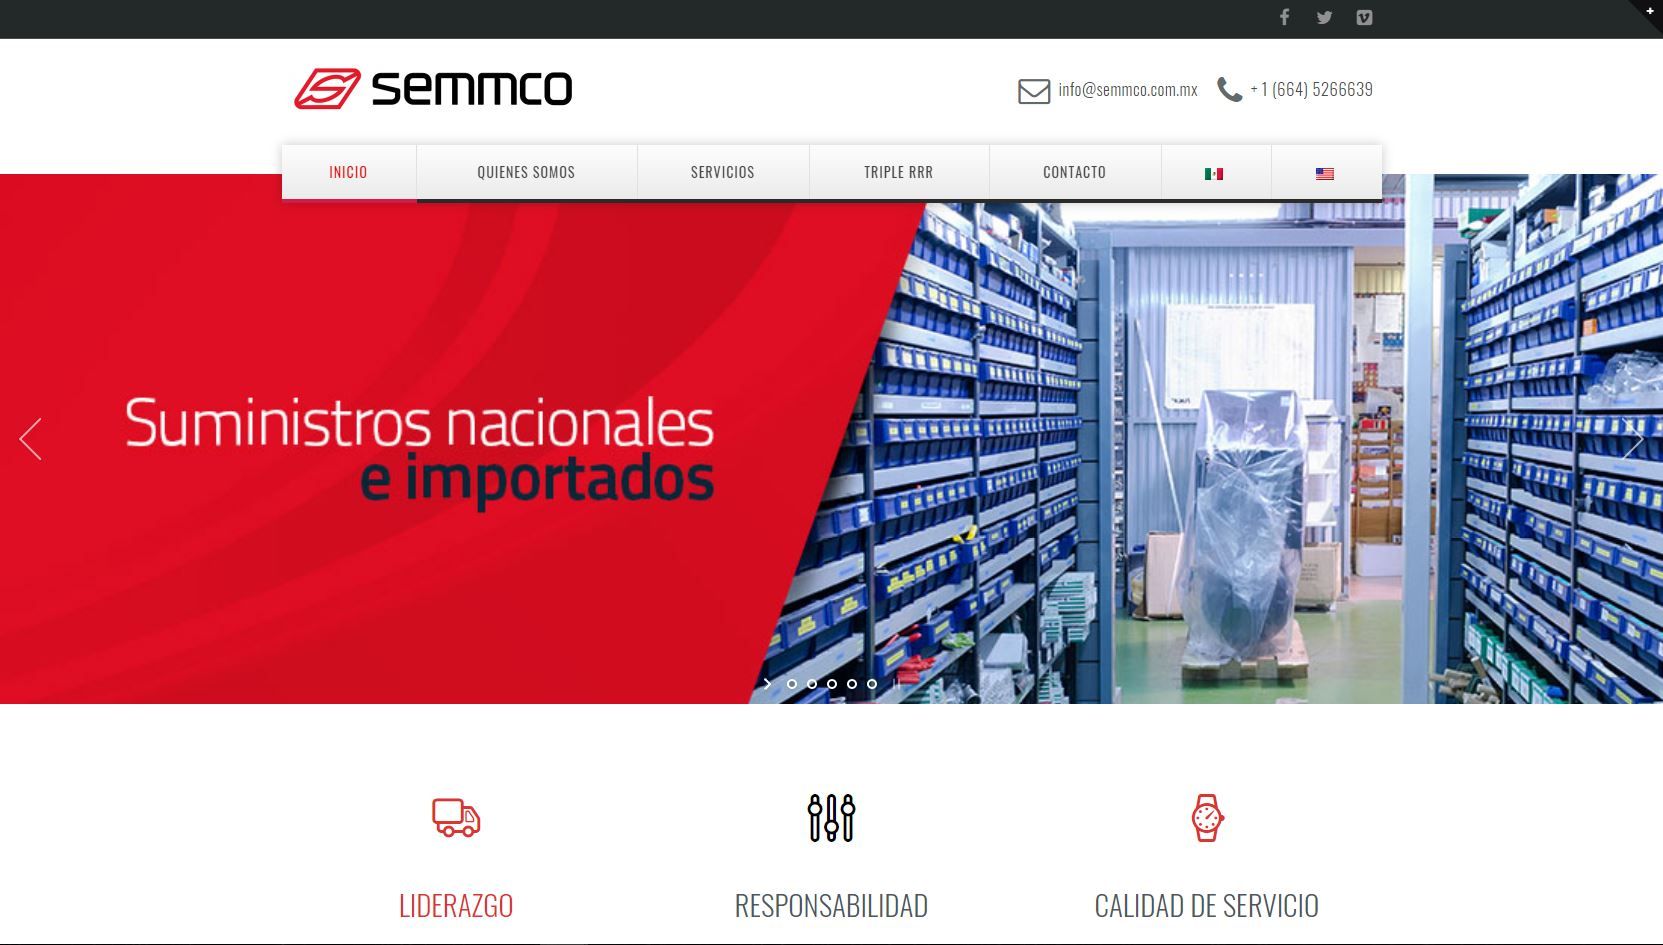 Semmco